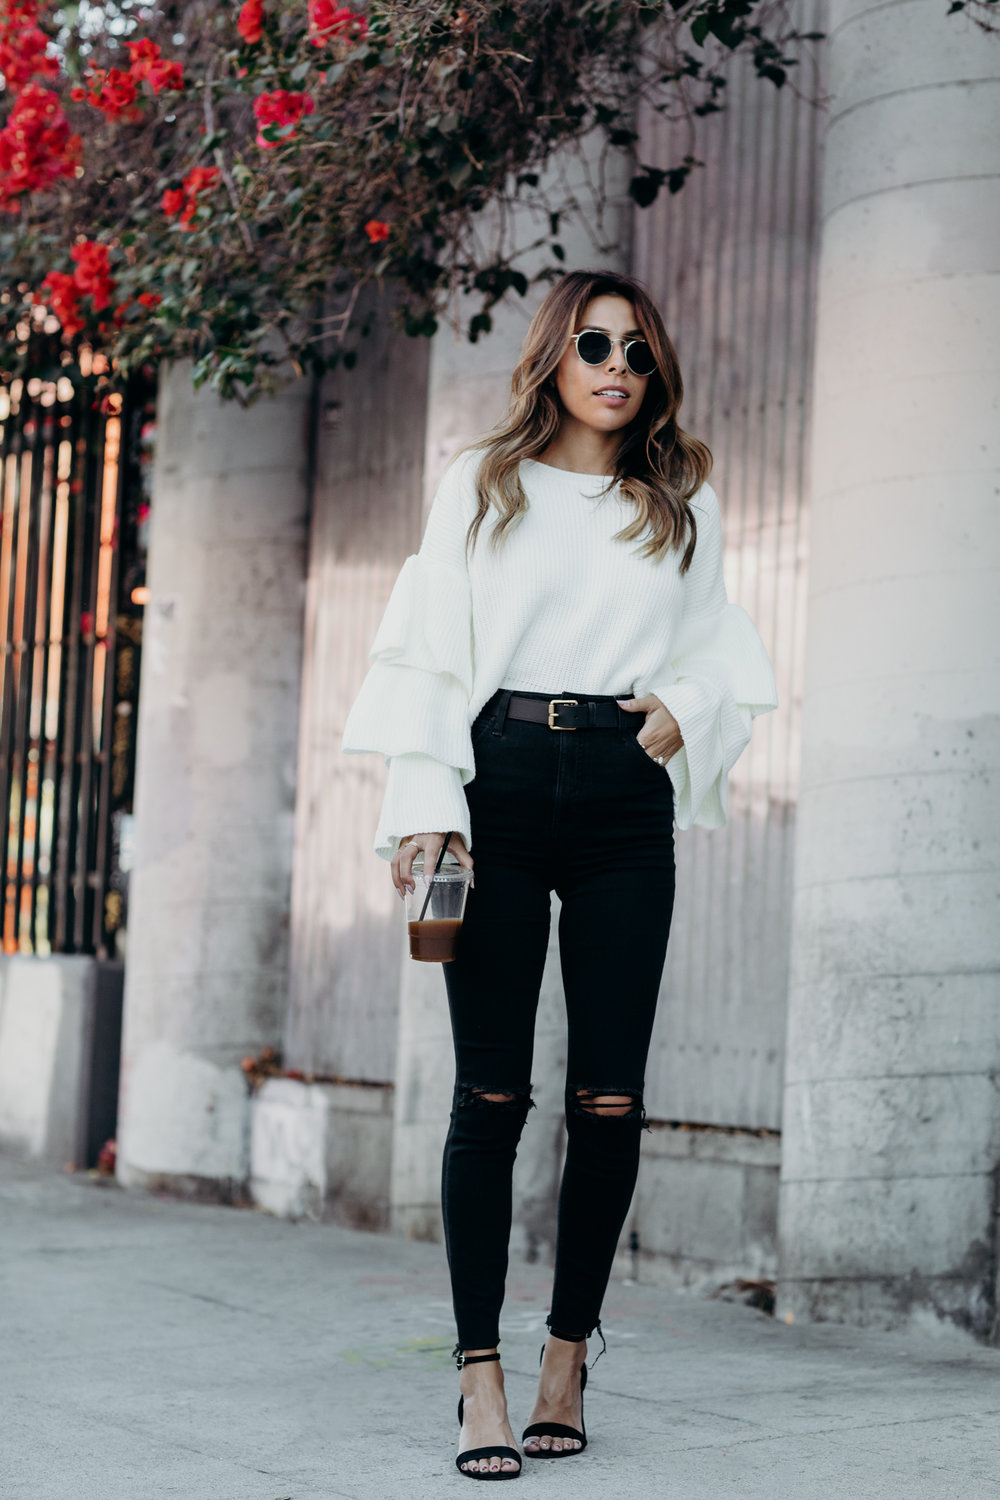 Casual fall Southern California Style, Everyday Pursuits jeans and sweater look